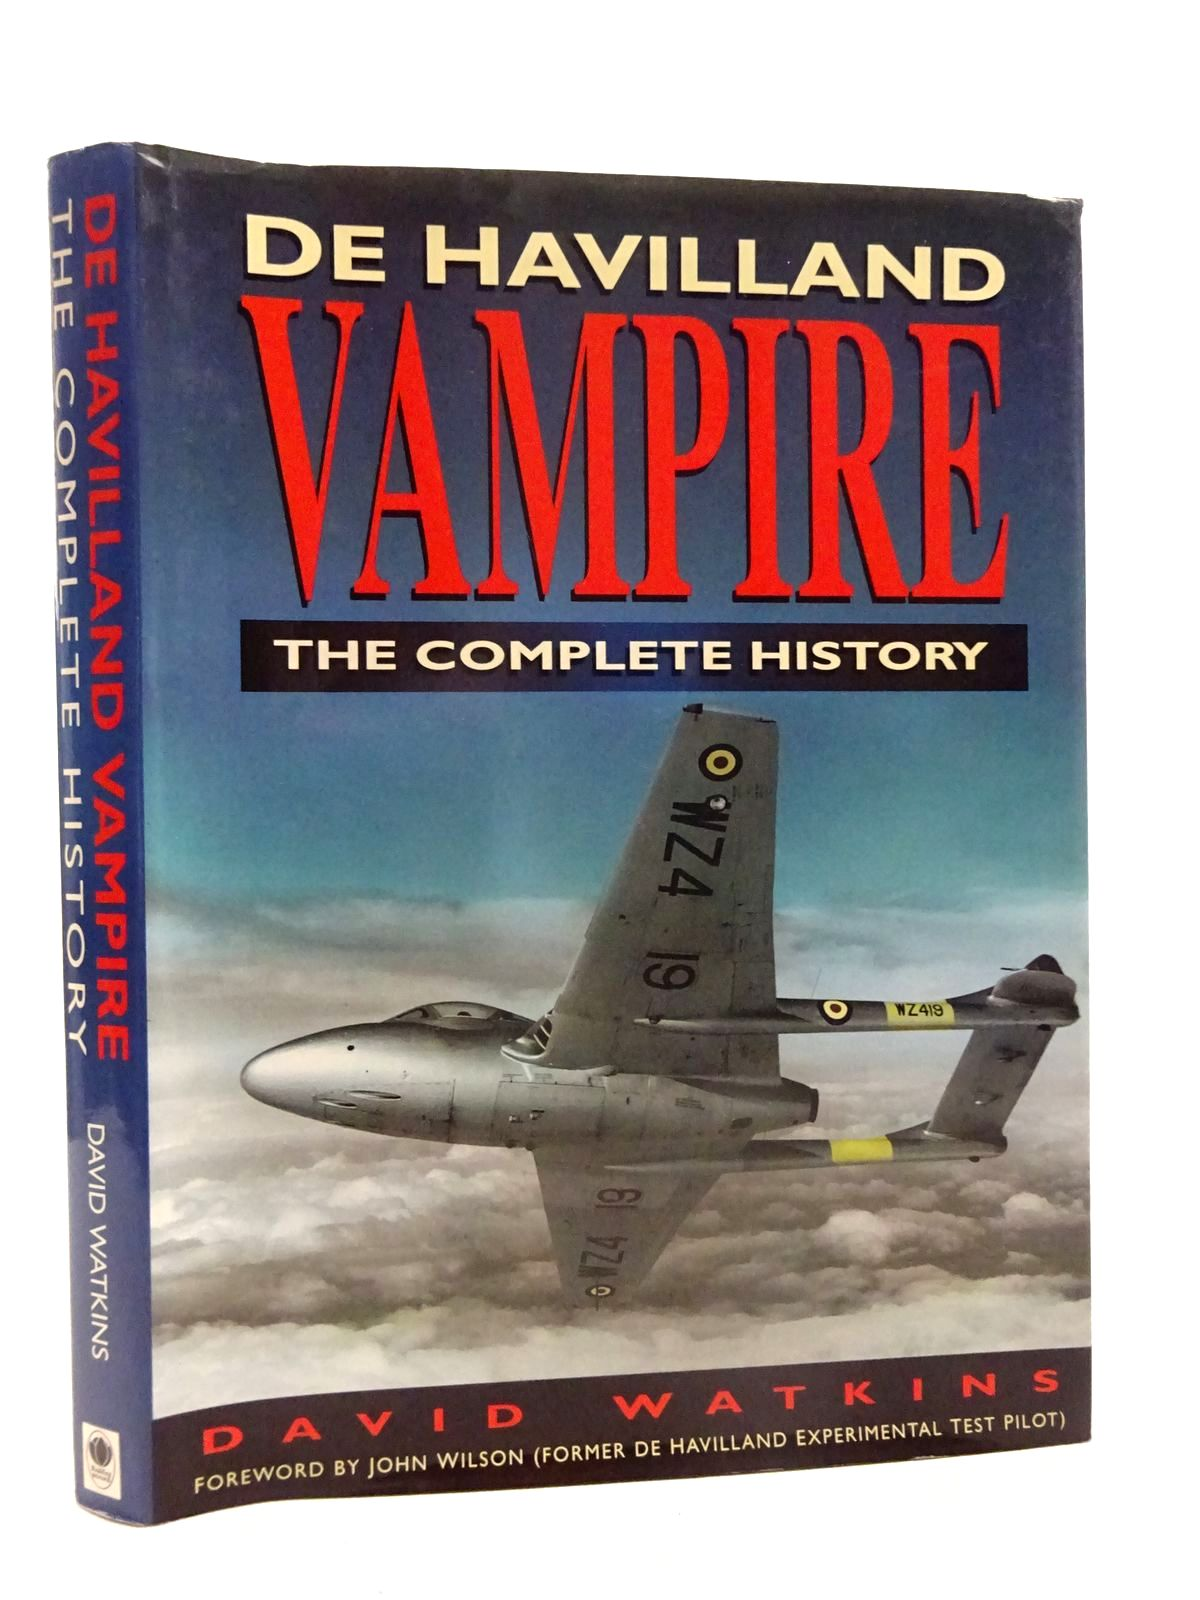 Photo of DE HAVILLAND VAMPIRE THE COMPLETE HISTORY written by Watkins, David published by Budding Books (STOCK CODE: 2125546)  for sale by Stella & Rose's Books